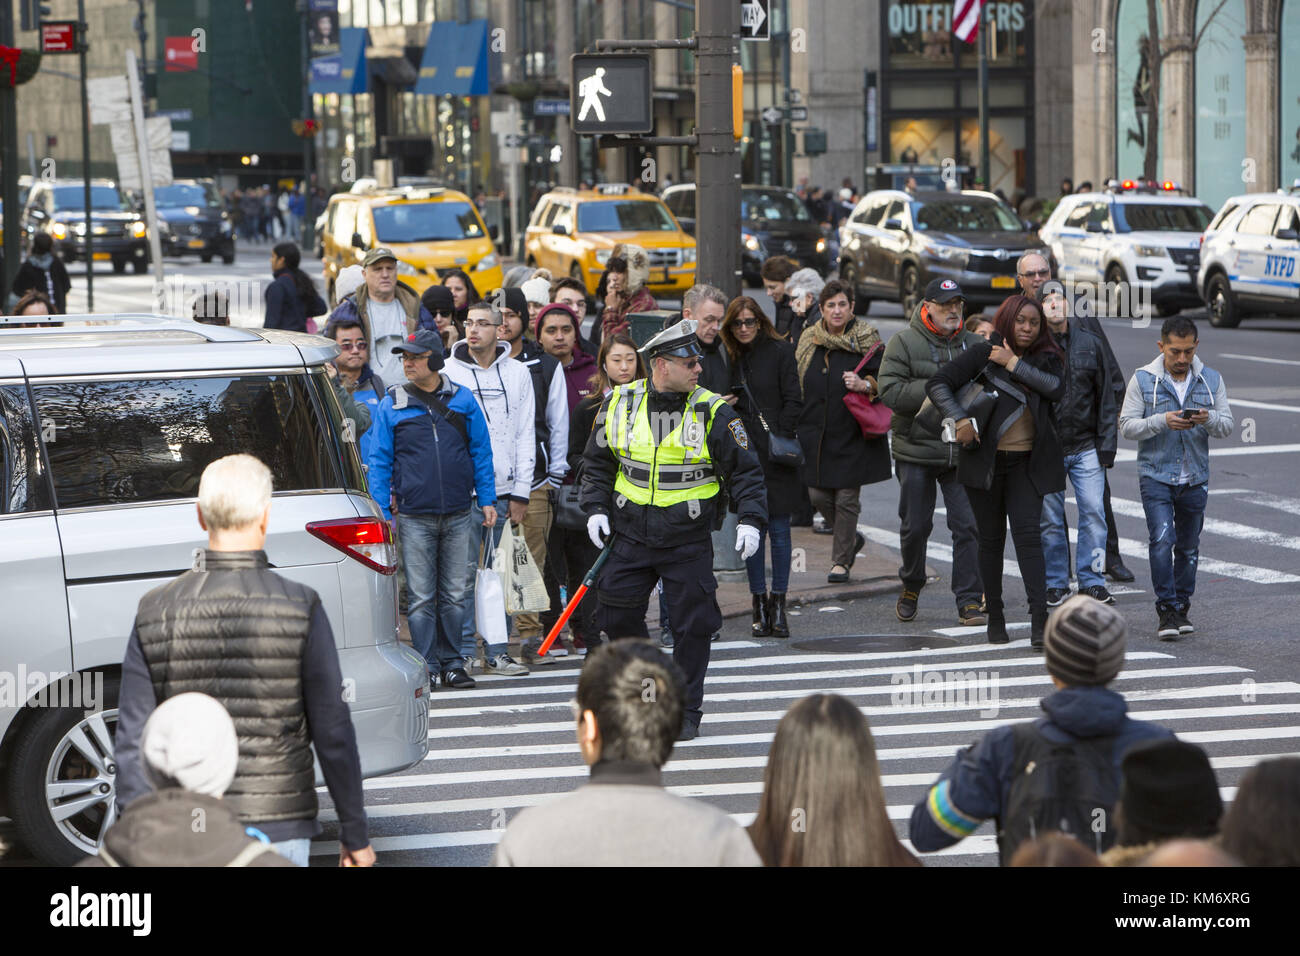 Crowds of tourists and shoppers at the corner of 42nd Street and 5th Avenue during the Black Friday Thanksgiving Stock Photo